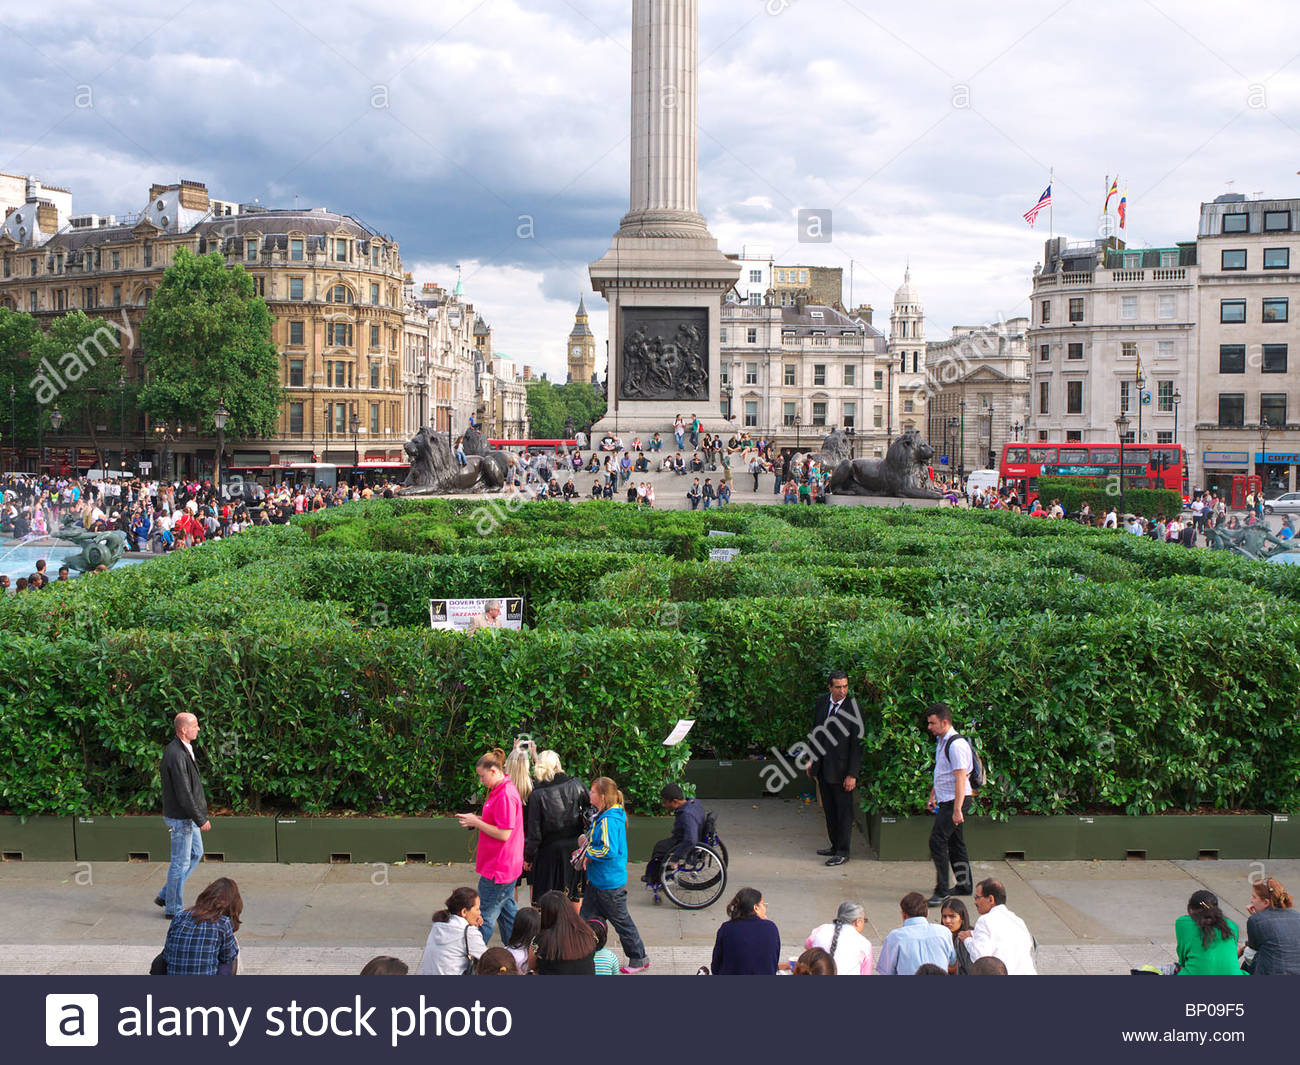 View of the temporary maze in London's Trafalgar Square during August 2010 - Stock Image